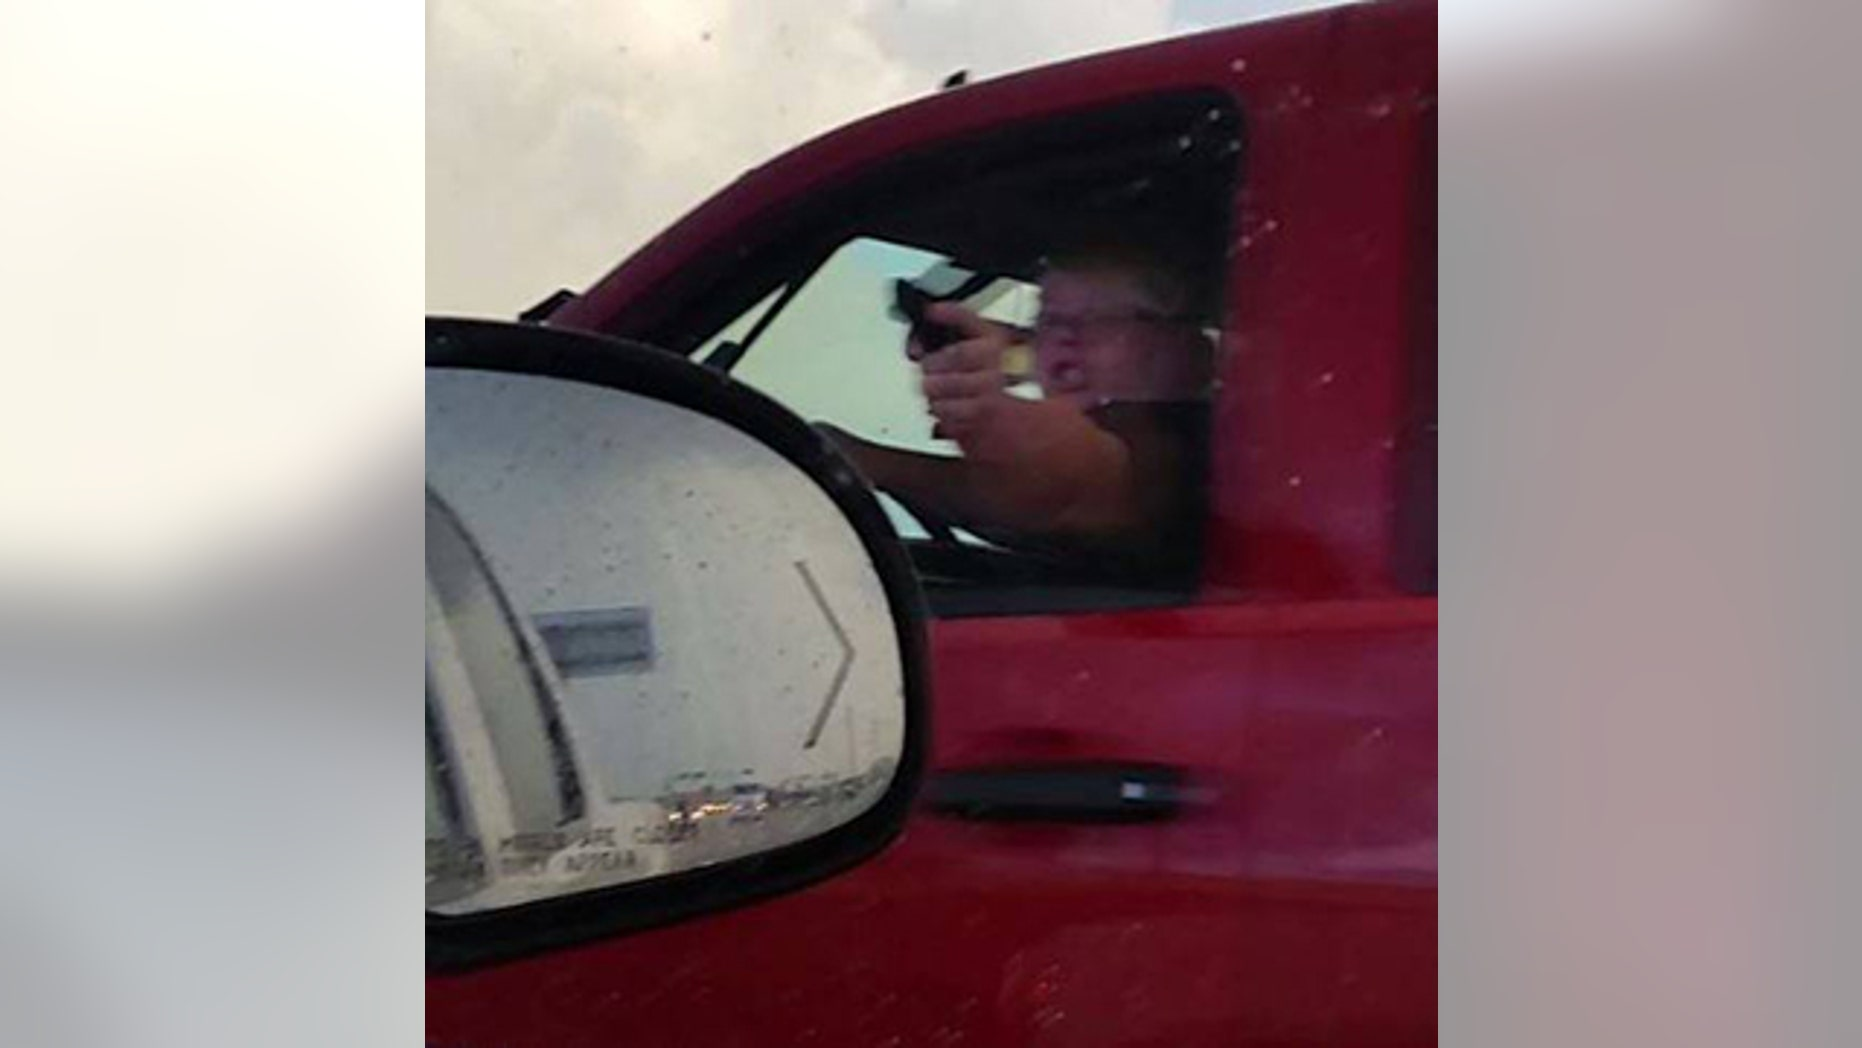 A woman identified as Amanda Downs points a folding knife cast to resemble a gun at fellow motorist in La Porte, Texas August 2.